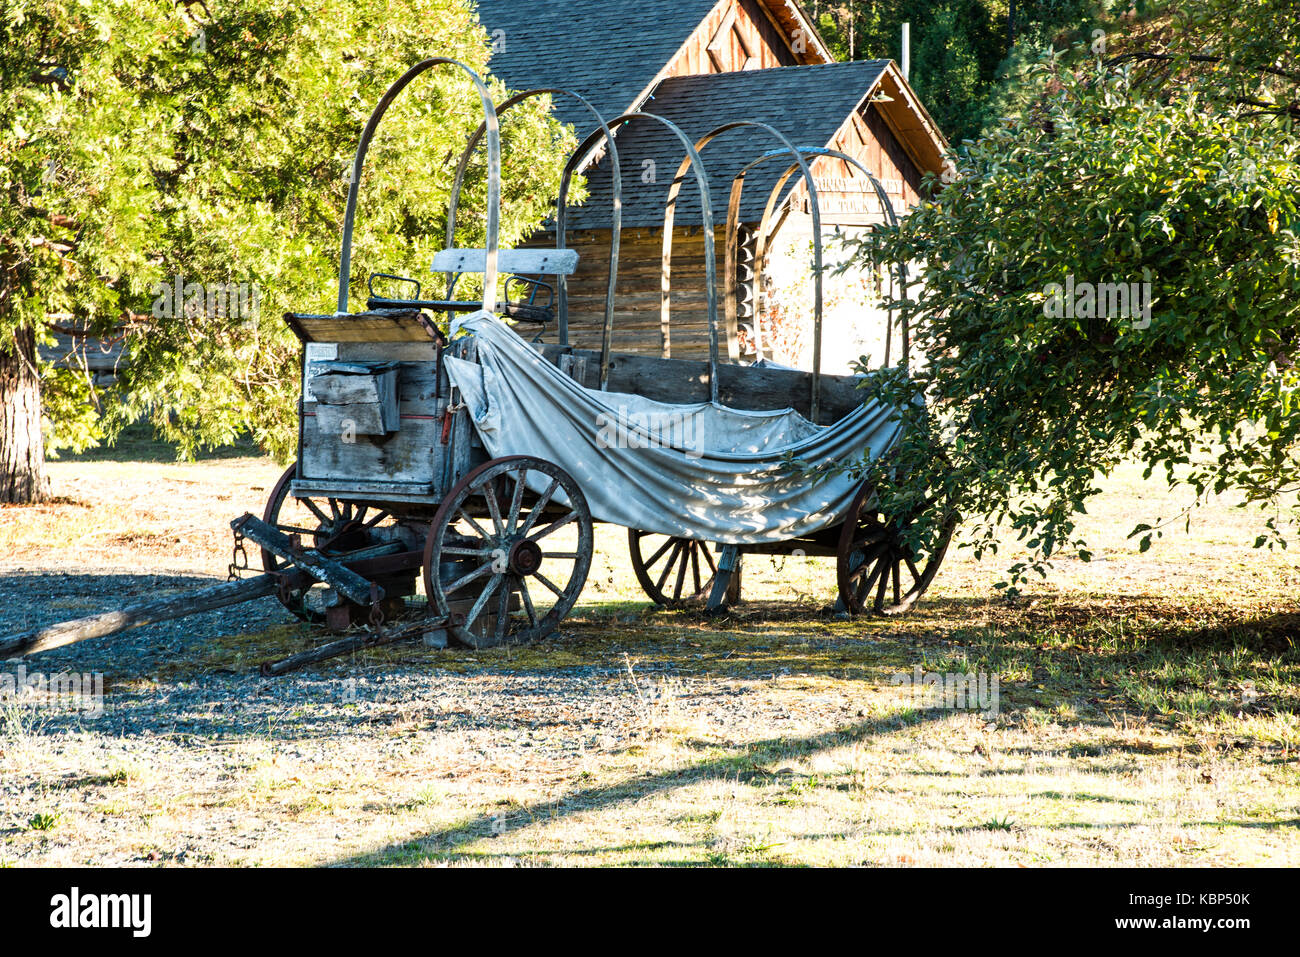 Sagging Conestoga Many Miles-An ancient covered wagon sits quietly, remembering the many miles it has traveled, - Stock Image